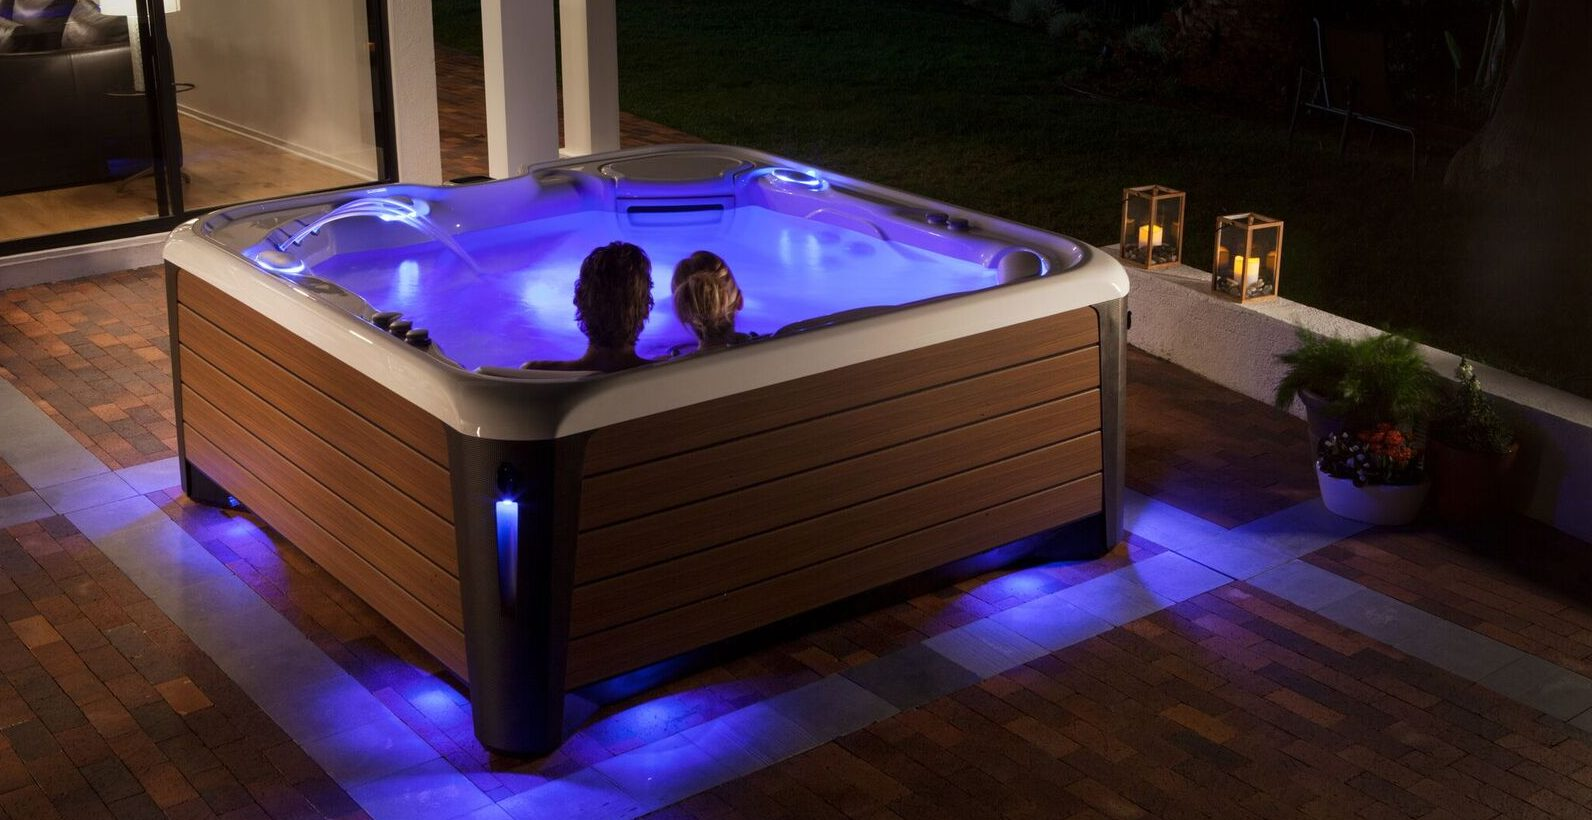 How Deep Is a Hot Tub?